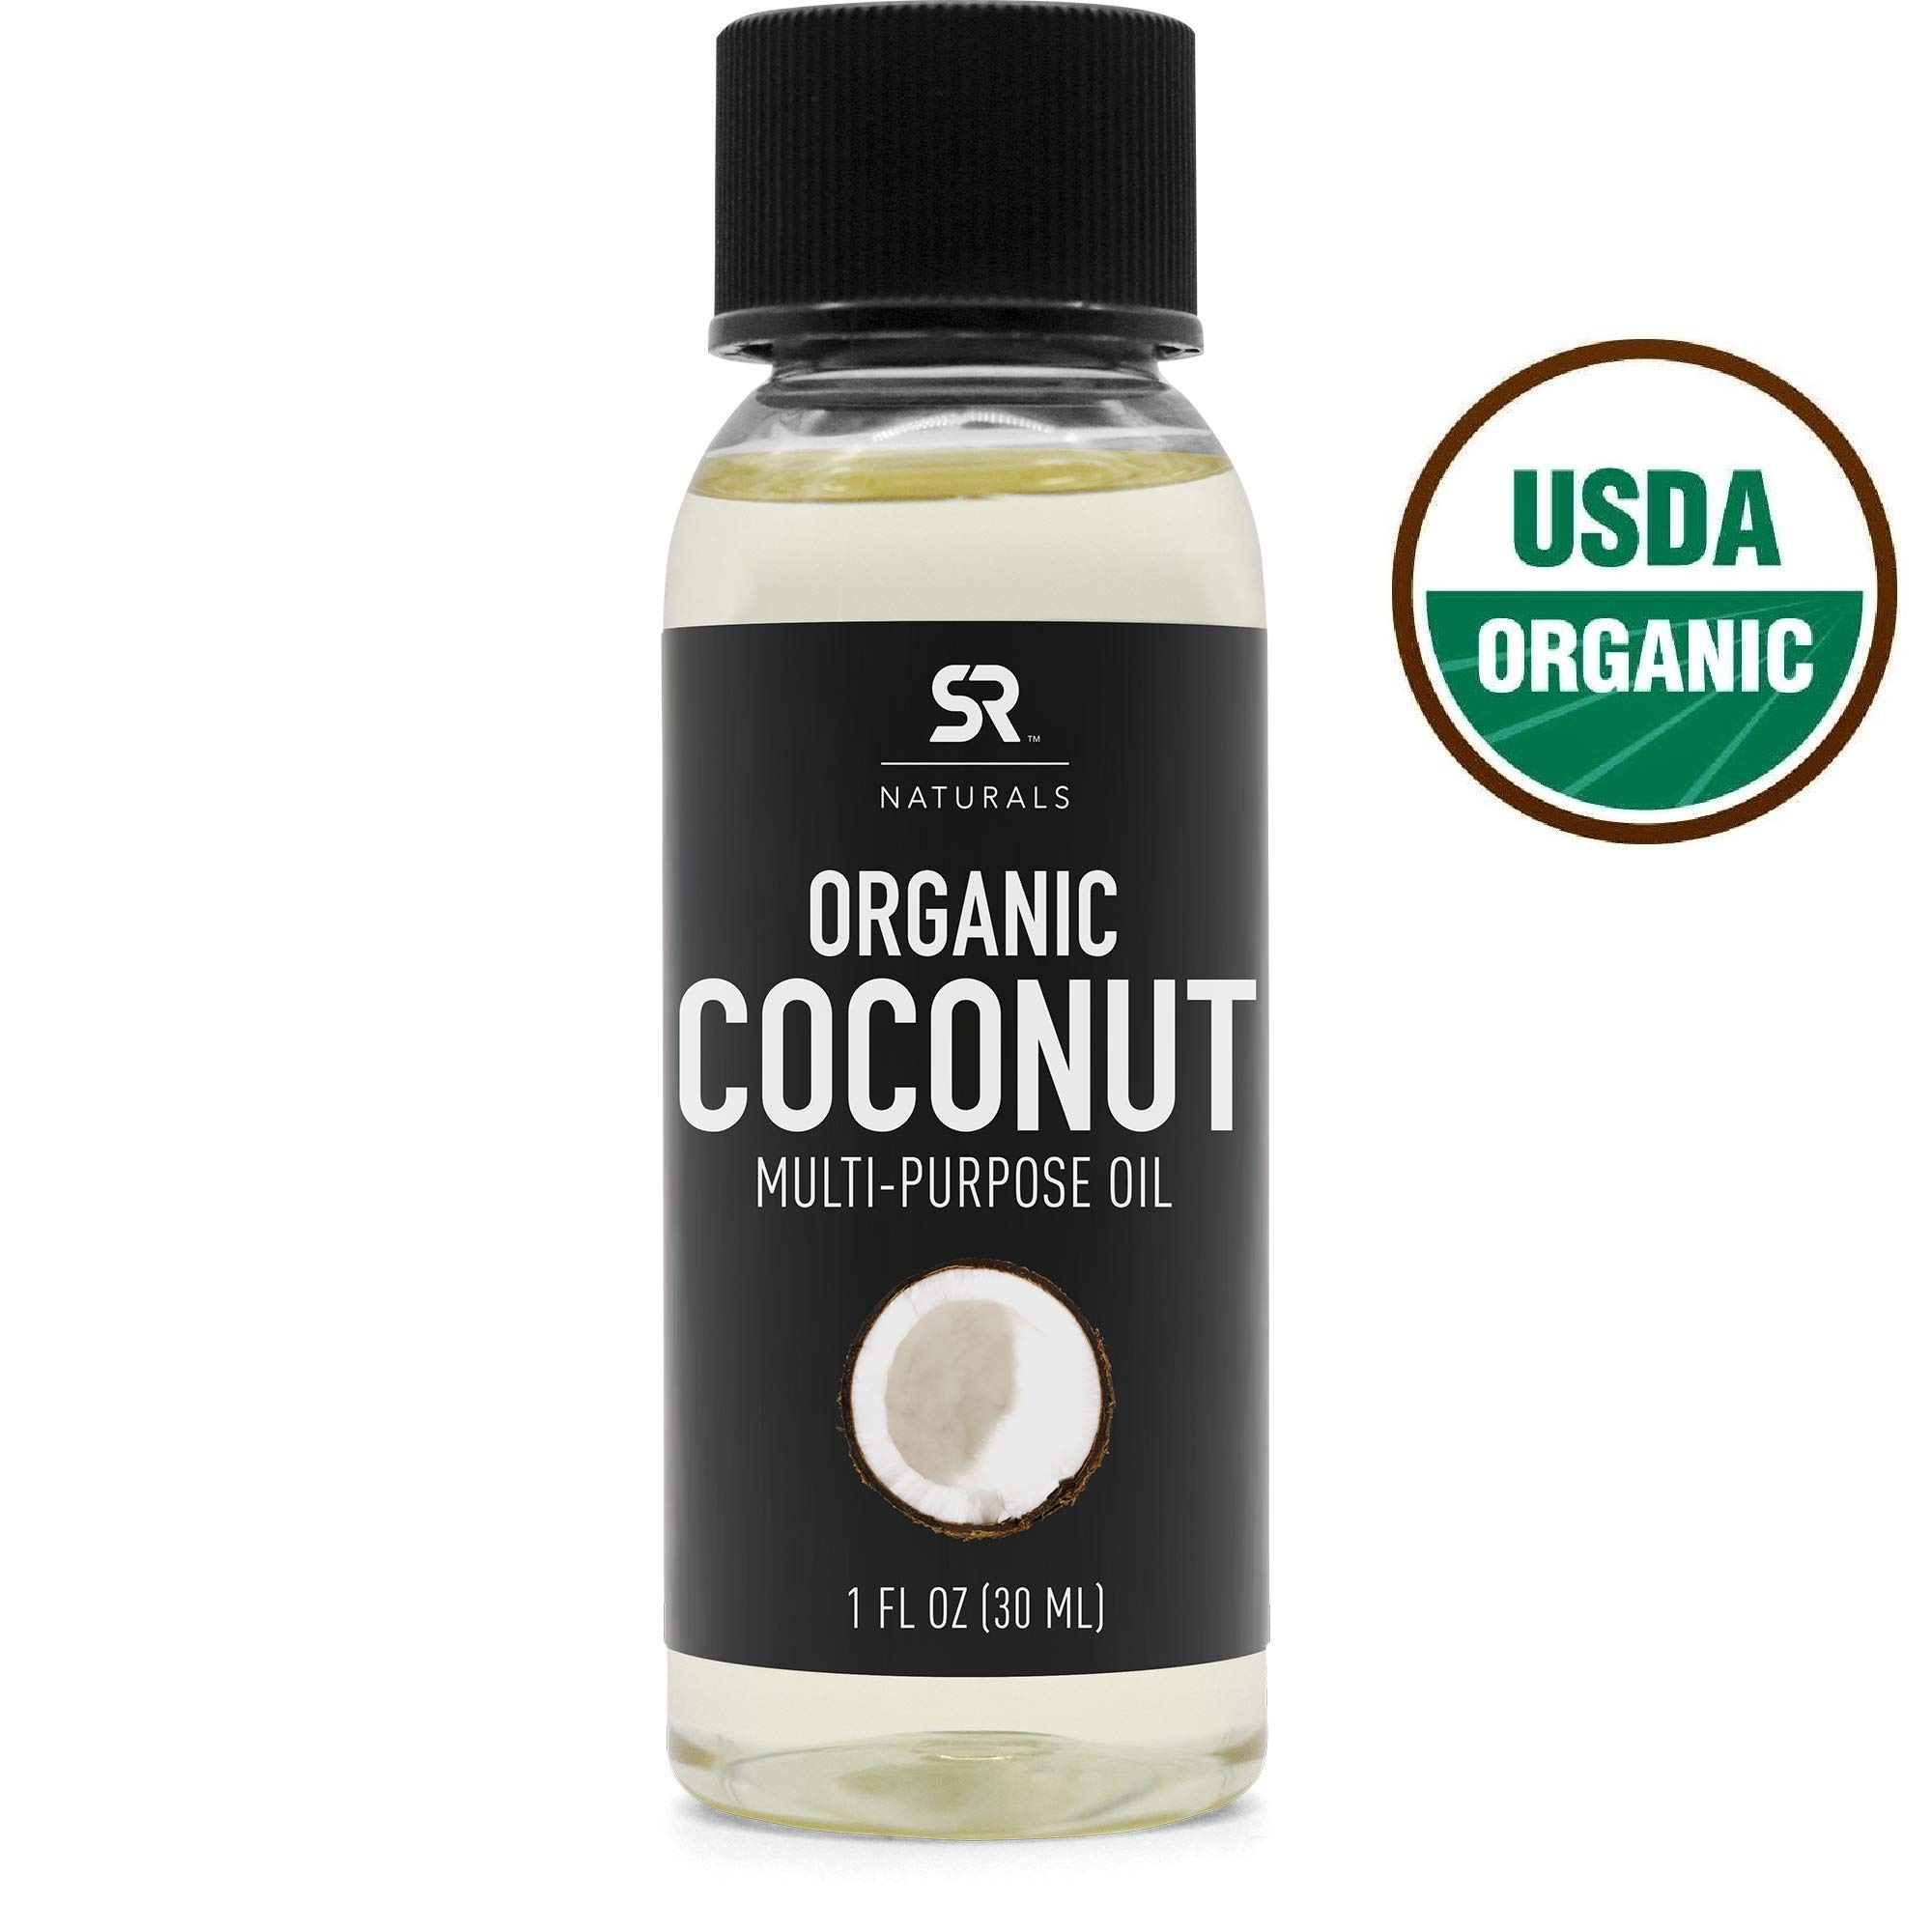 Organic Fractionated Coconut Oil by SR Naturals ~ 100% Pure Multi-Purpose Oil for Skin, Hair and DIY products ~ Organic Certified & Non-GMO Verified (1oz)